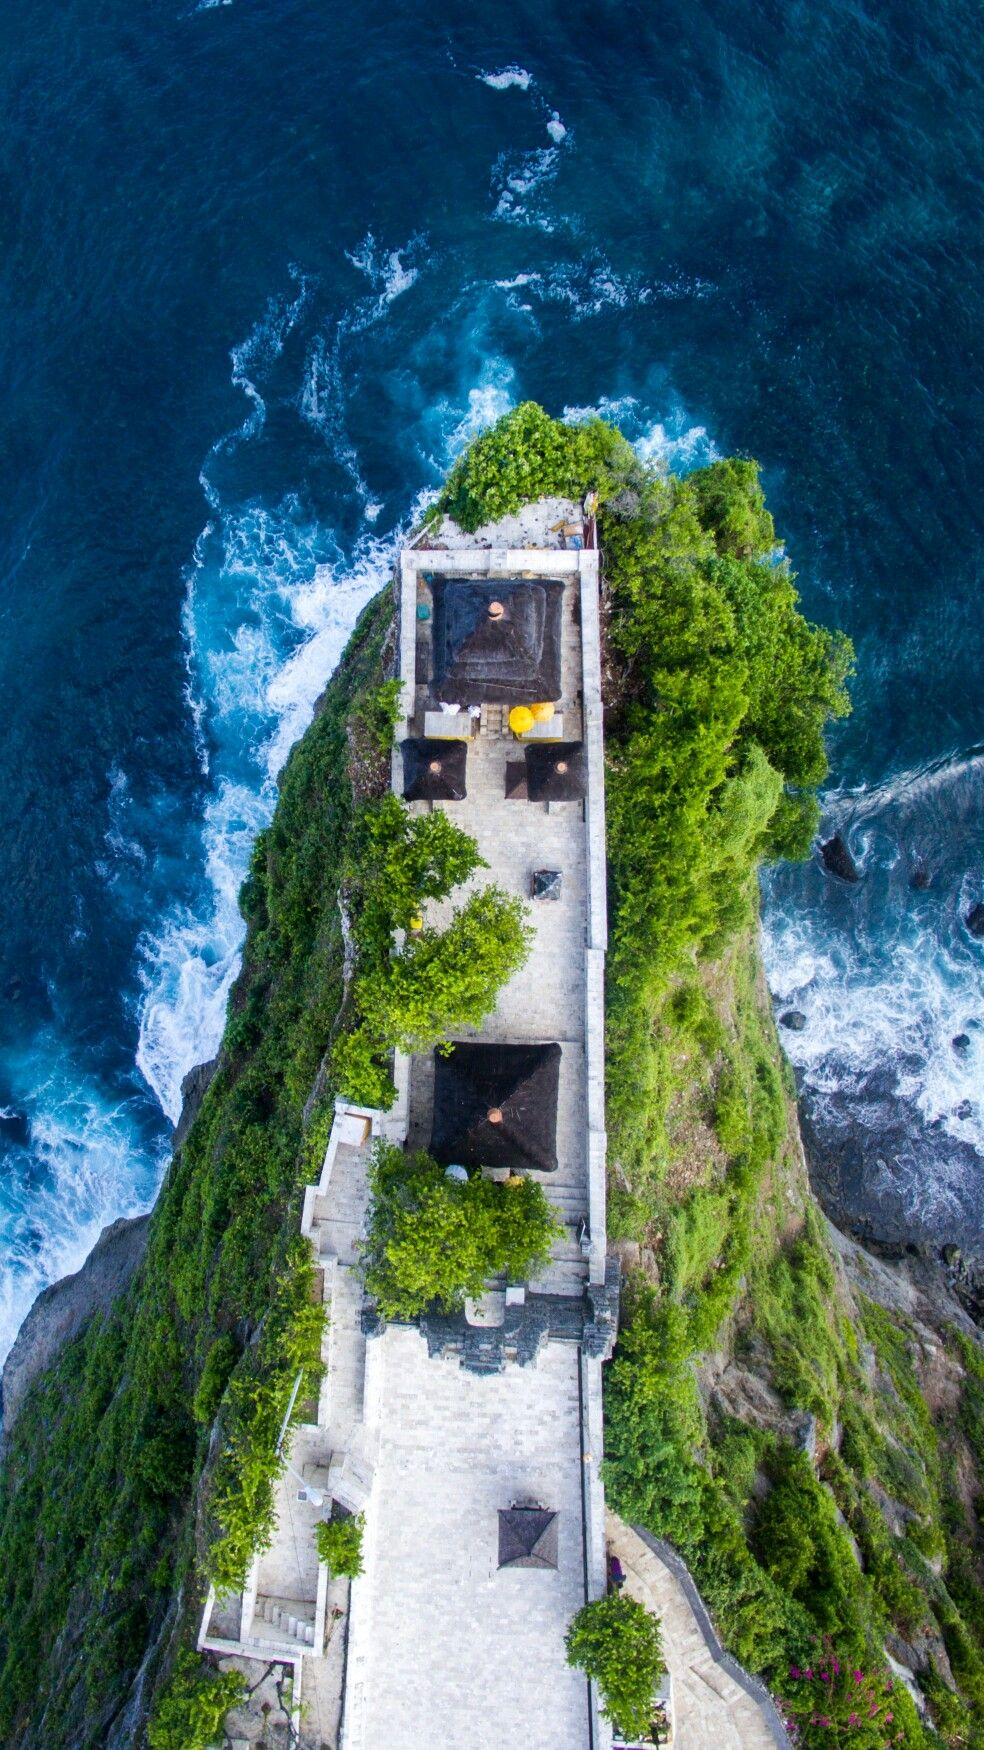 Drones Photography Image By Iyan Sofyan Aerial View Aerial